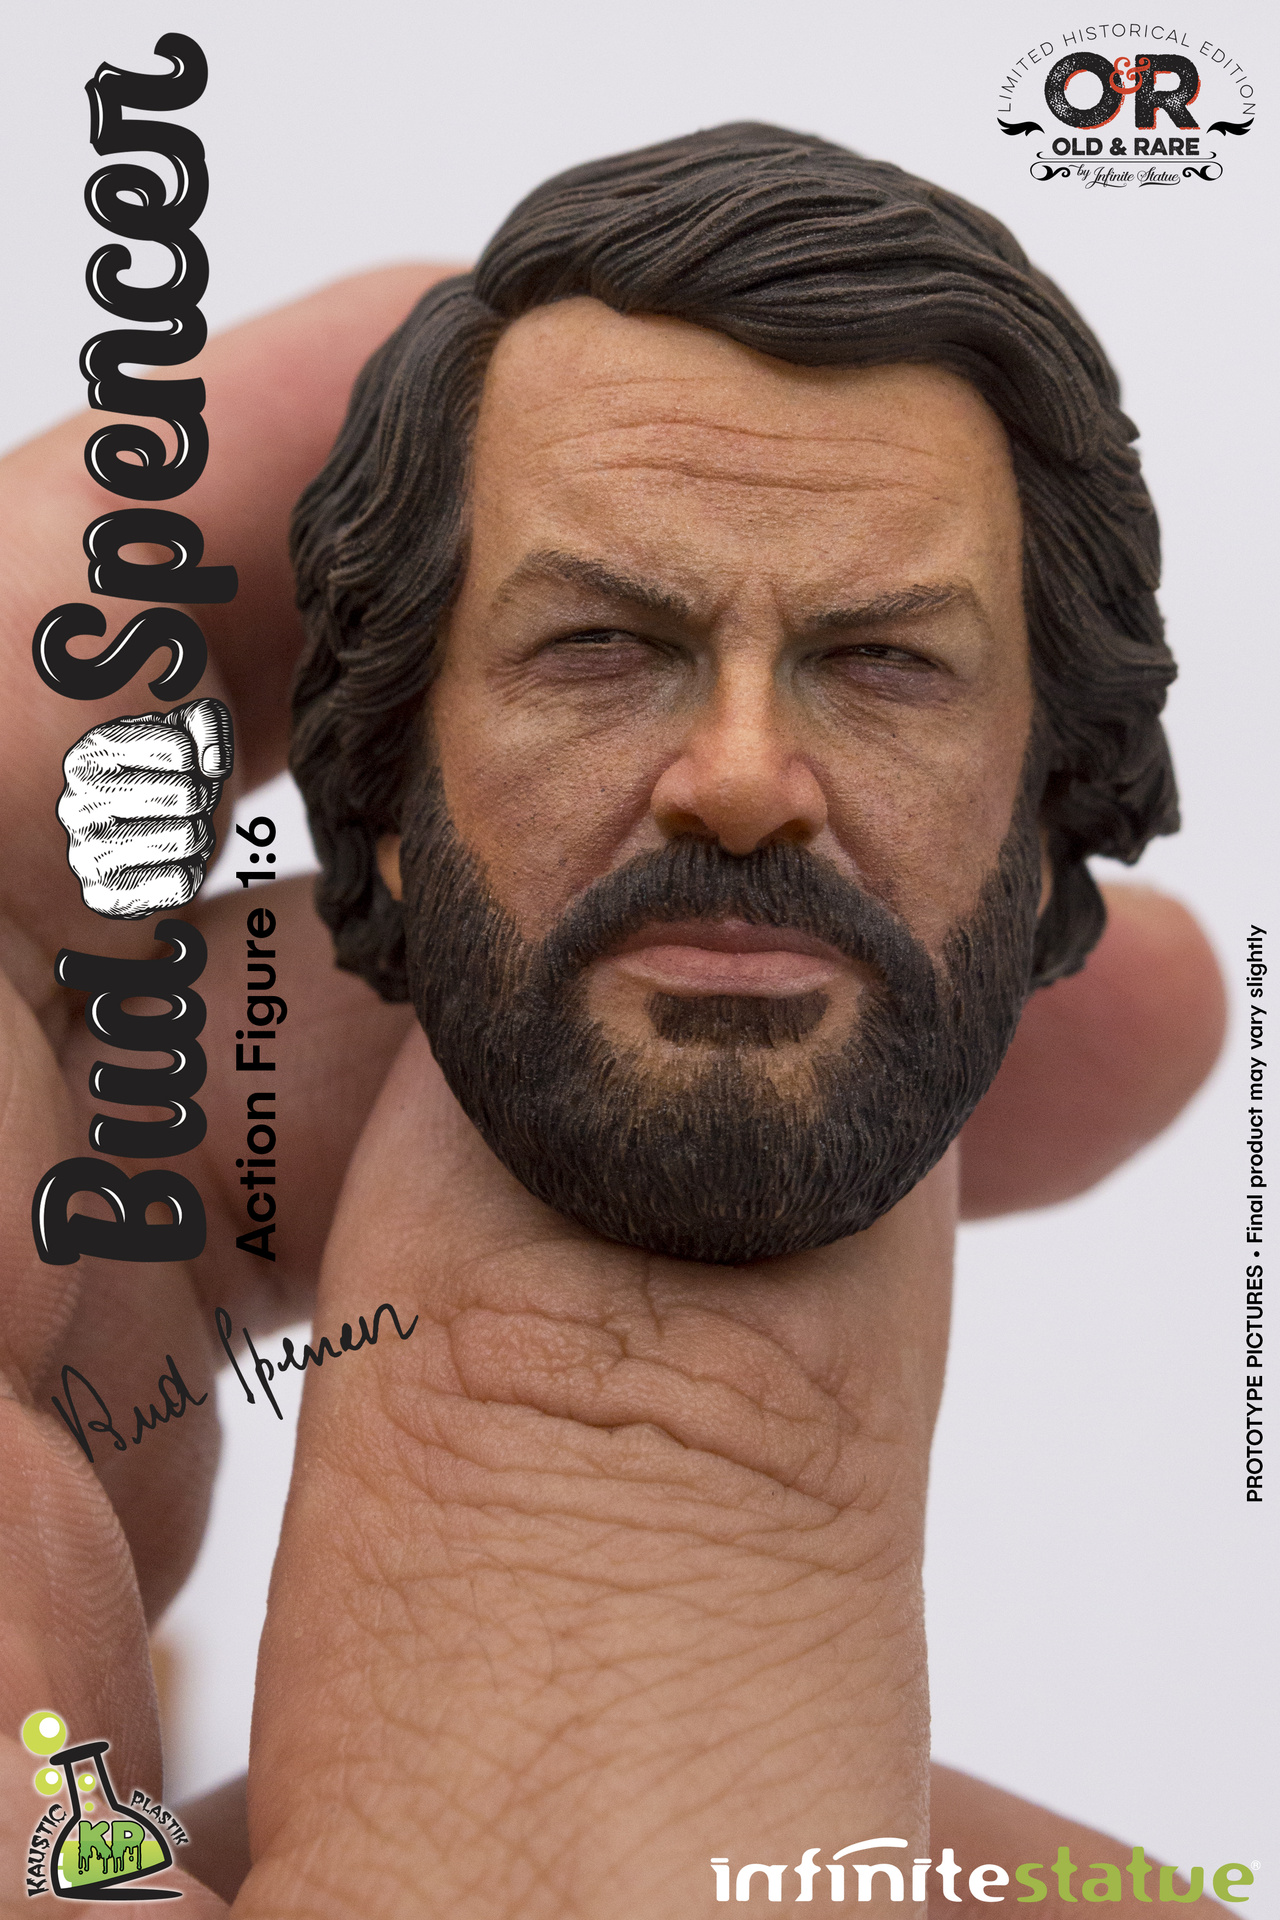 Link a bud_spencer_infinite_statue_action_figure-18